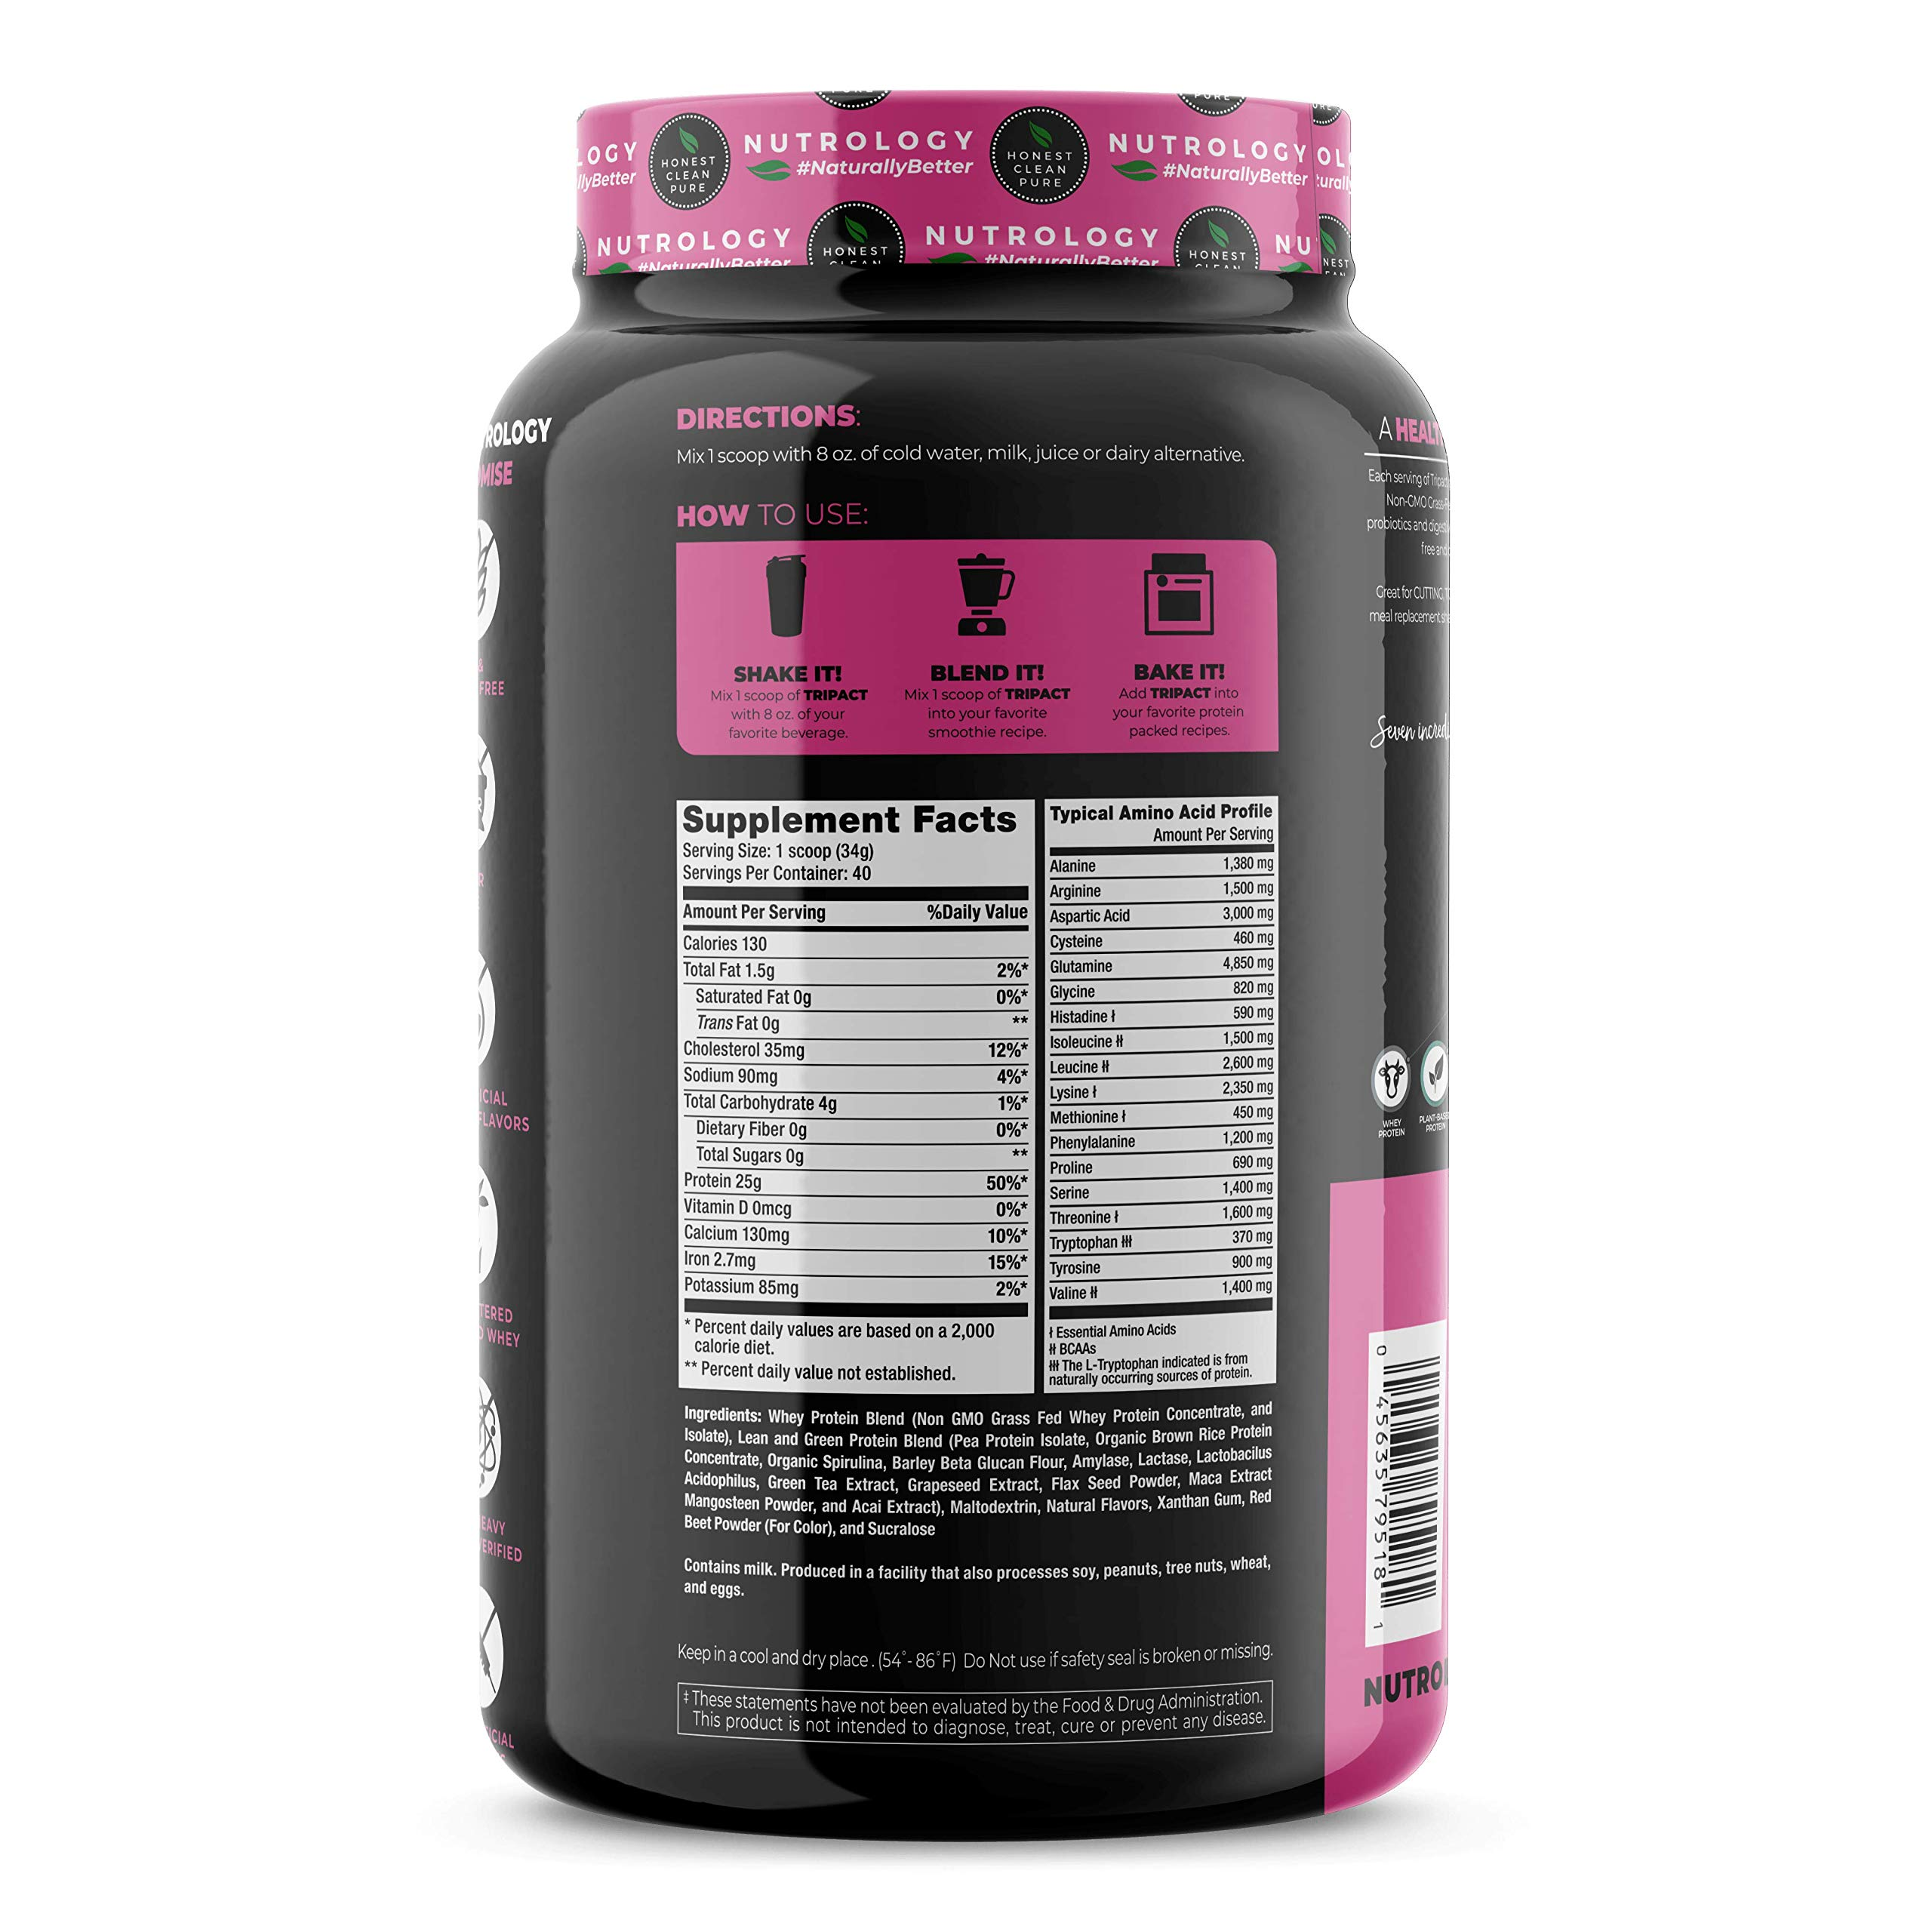 TRIPACT PROTEIN - Superberry 3lb. - Premium Nutrition Shake Featuring Non-GMO Grass Fed Whey Protein, Plant Proteins, Greens, Superfoods and Probiotics.